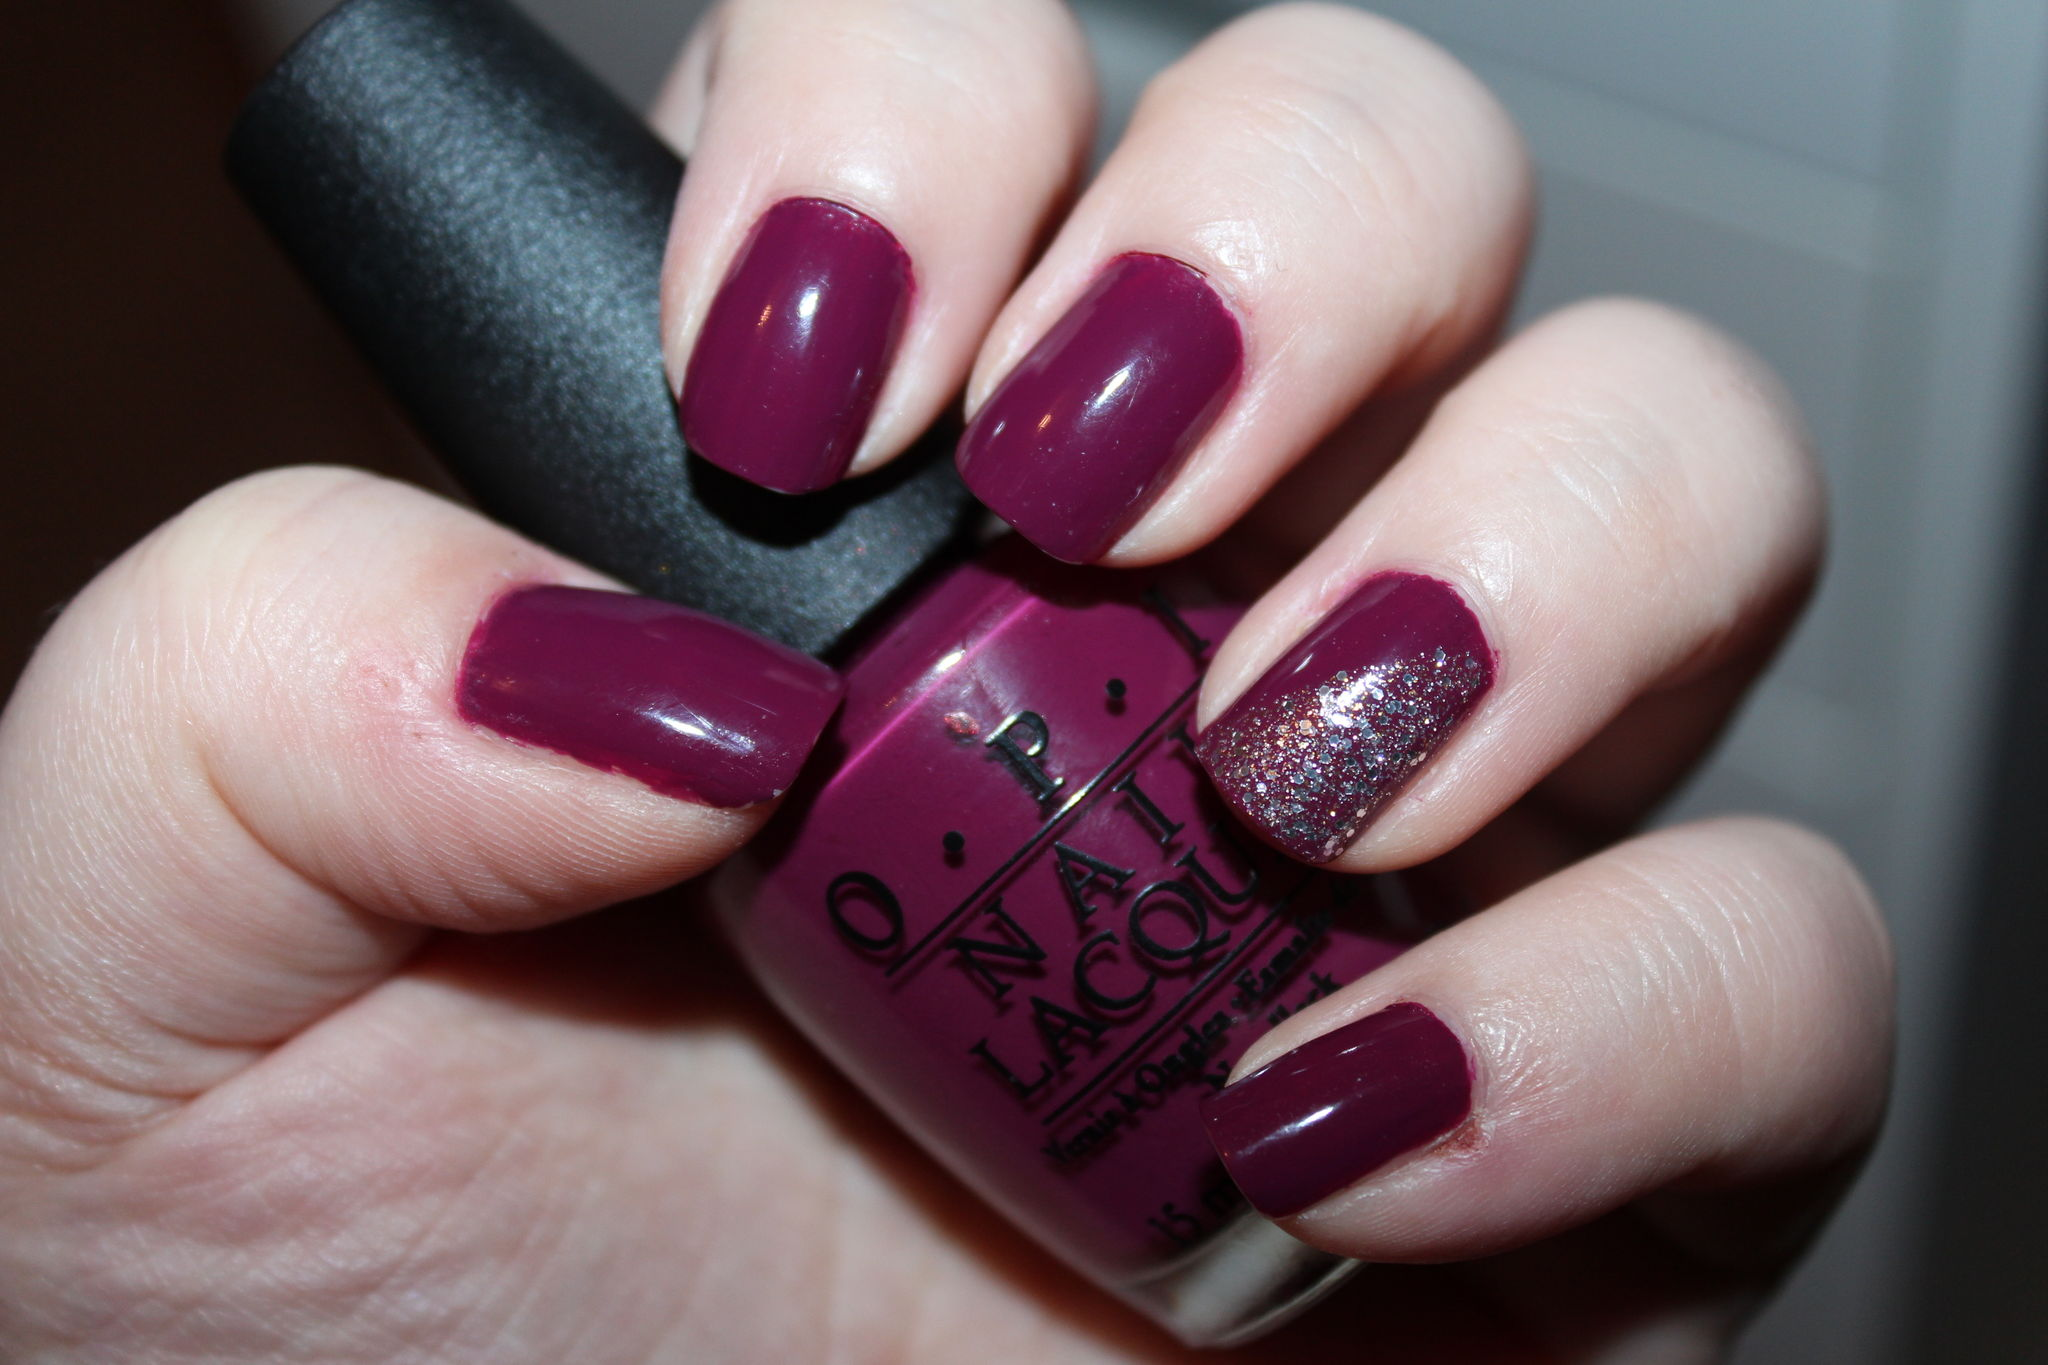 Top Review : Casino Royale d'OPI (+ Halo d'Orly en accent nail) - Les  NC38